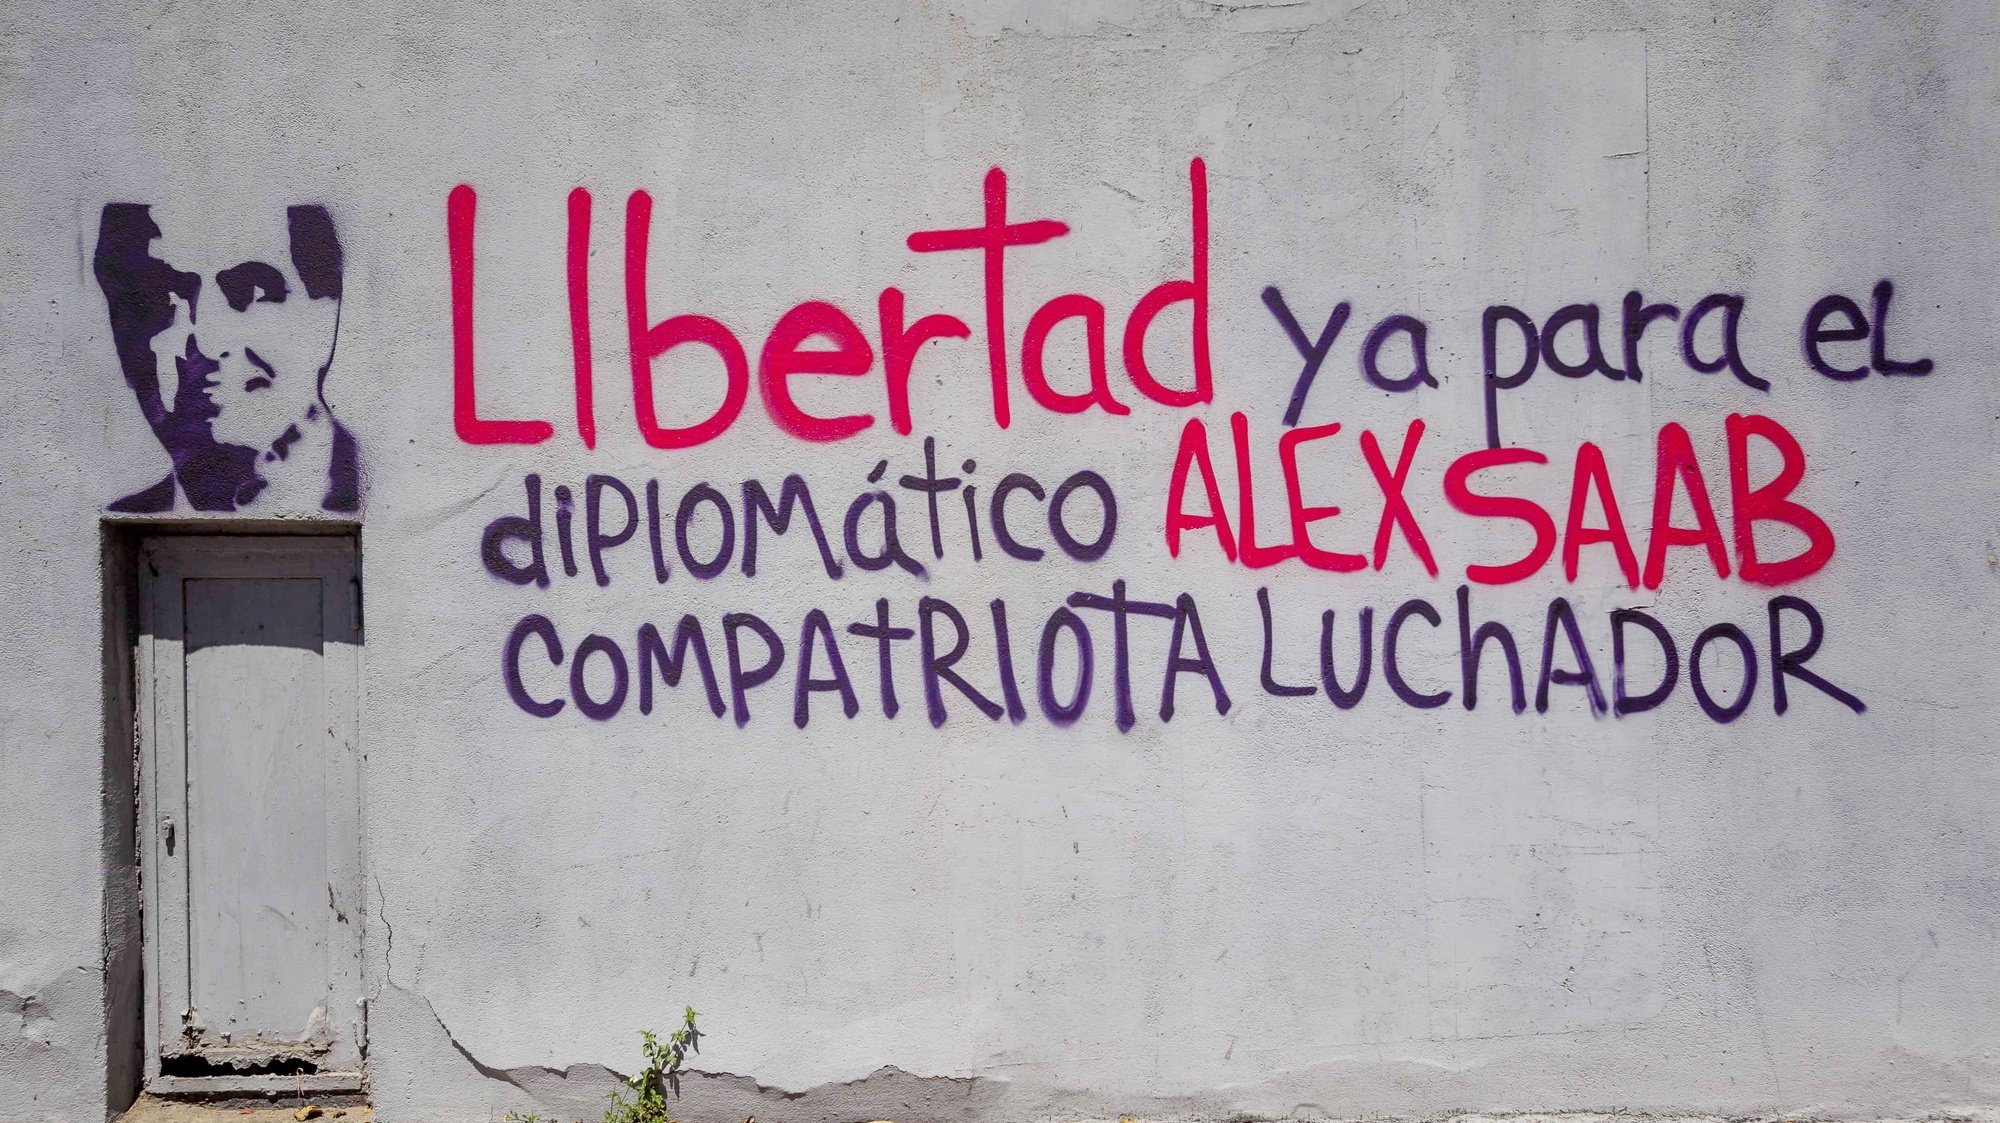 epa09024179 A graffiti oim support of Alex Saab reading 'Freedom now for the diplomat Alex Saan compatriot fighter' at wall of the ruling party PDVSA headquarters in Caracas, Venezuela, 19 February 2021. Venezuelan diplomat Alex Saab was arrested in Cape Verde in June 2020 at the request of the USA for alleged financial crimes, he was later placed under house arrest in January 2021.  EPA/Miguel Gutiérrez